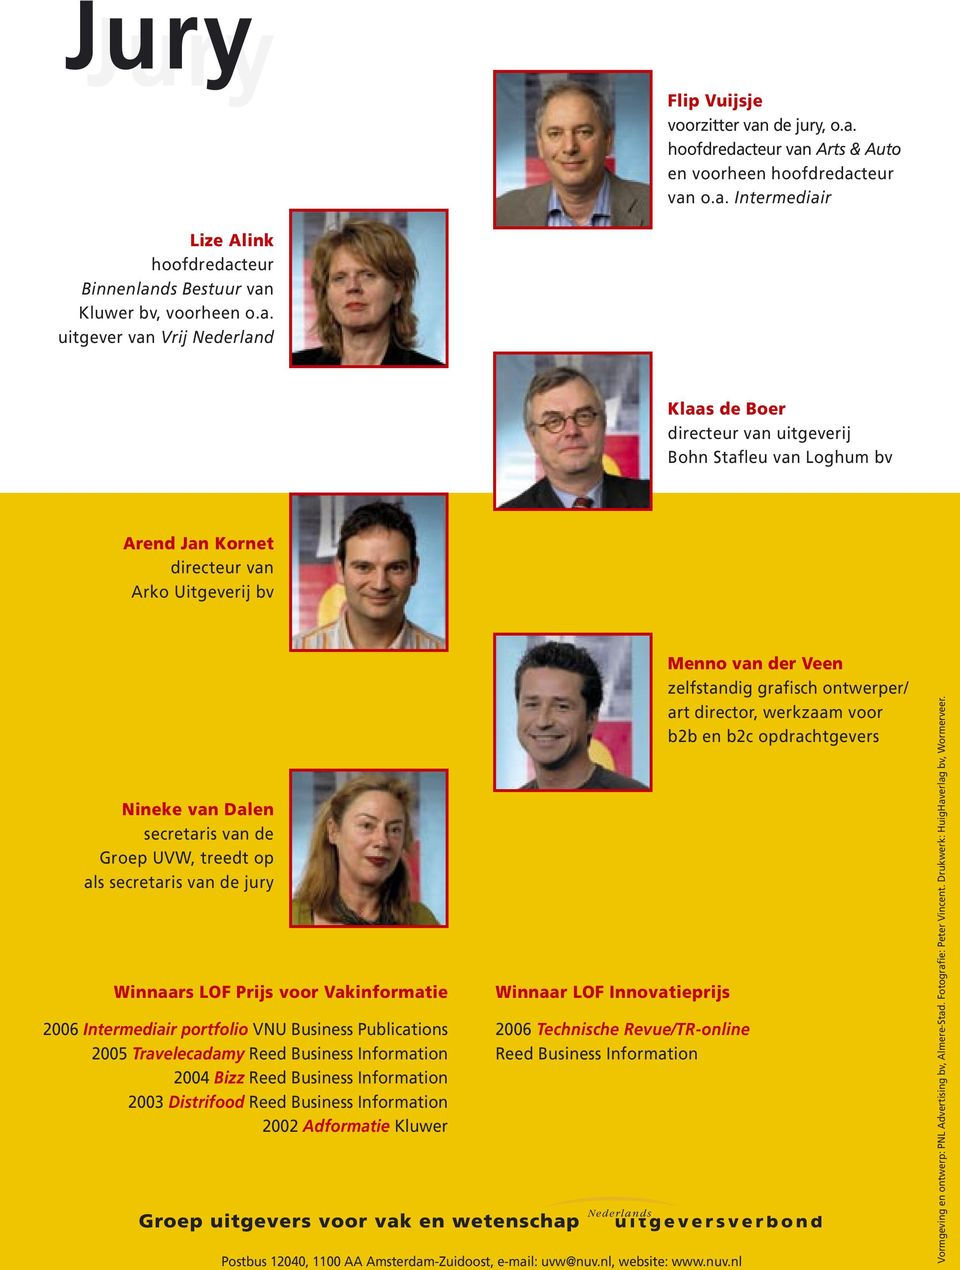 op als secretaris van de jury Winnaars LOF Prijs voor Vakinformatie 2006 Intermediair portfolio VNU Business Publications 2005 Travelecadamy Reed Business Information 2004 Bizz Reed Business